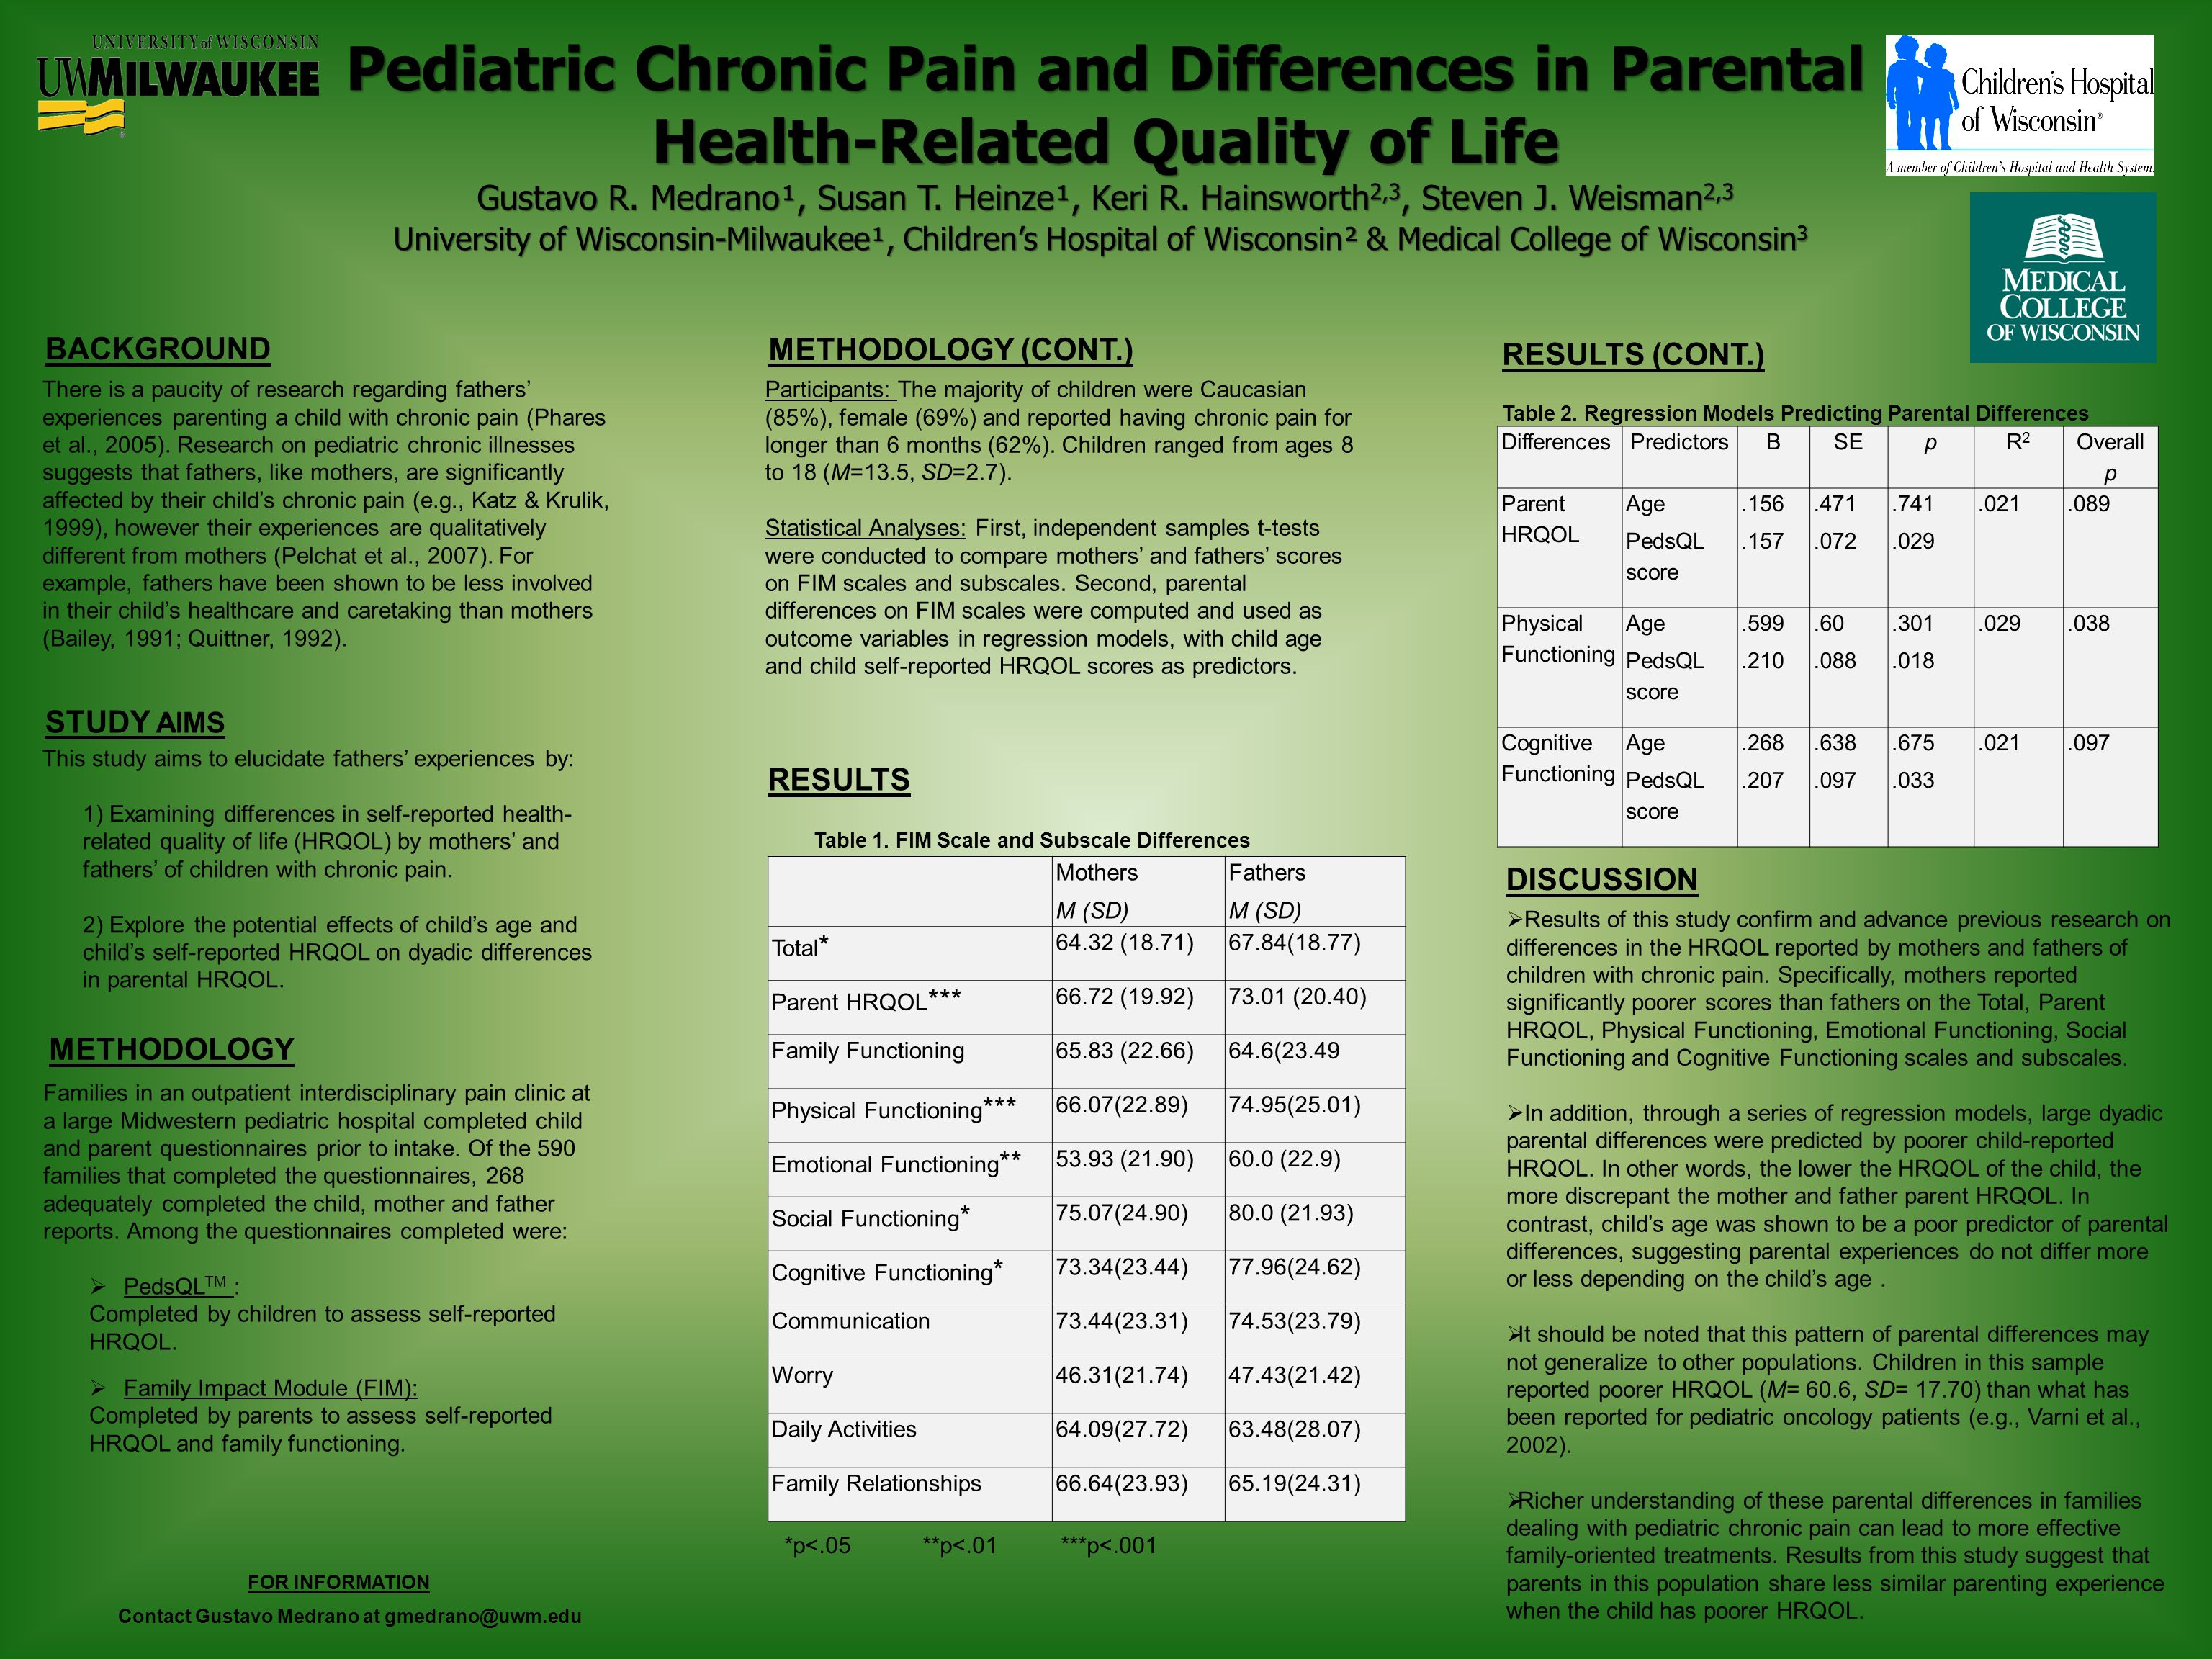 Pediatric Chronic Pain and Differences in Parental Health-Related Quality of Life Gustavo R. Medrano¹, Susan T. Heinze¹, Keri R. Hainsworth 2,3, Steve